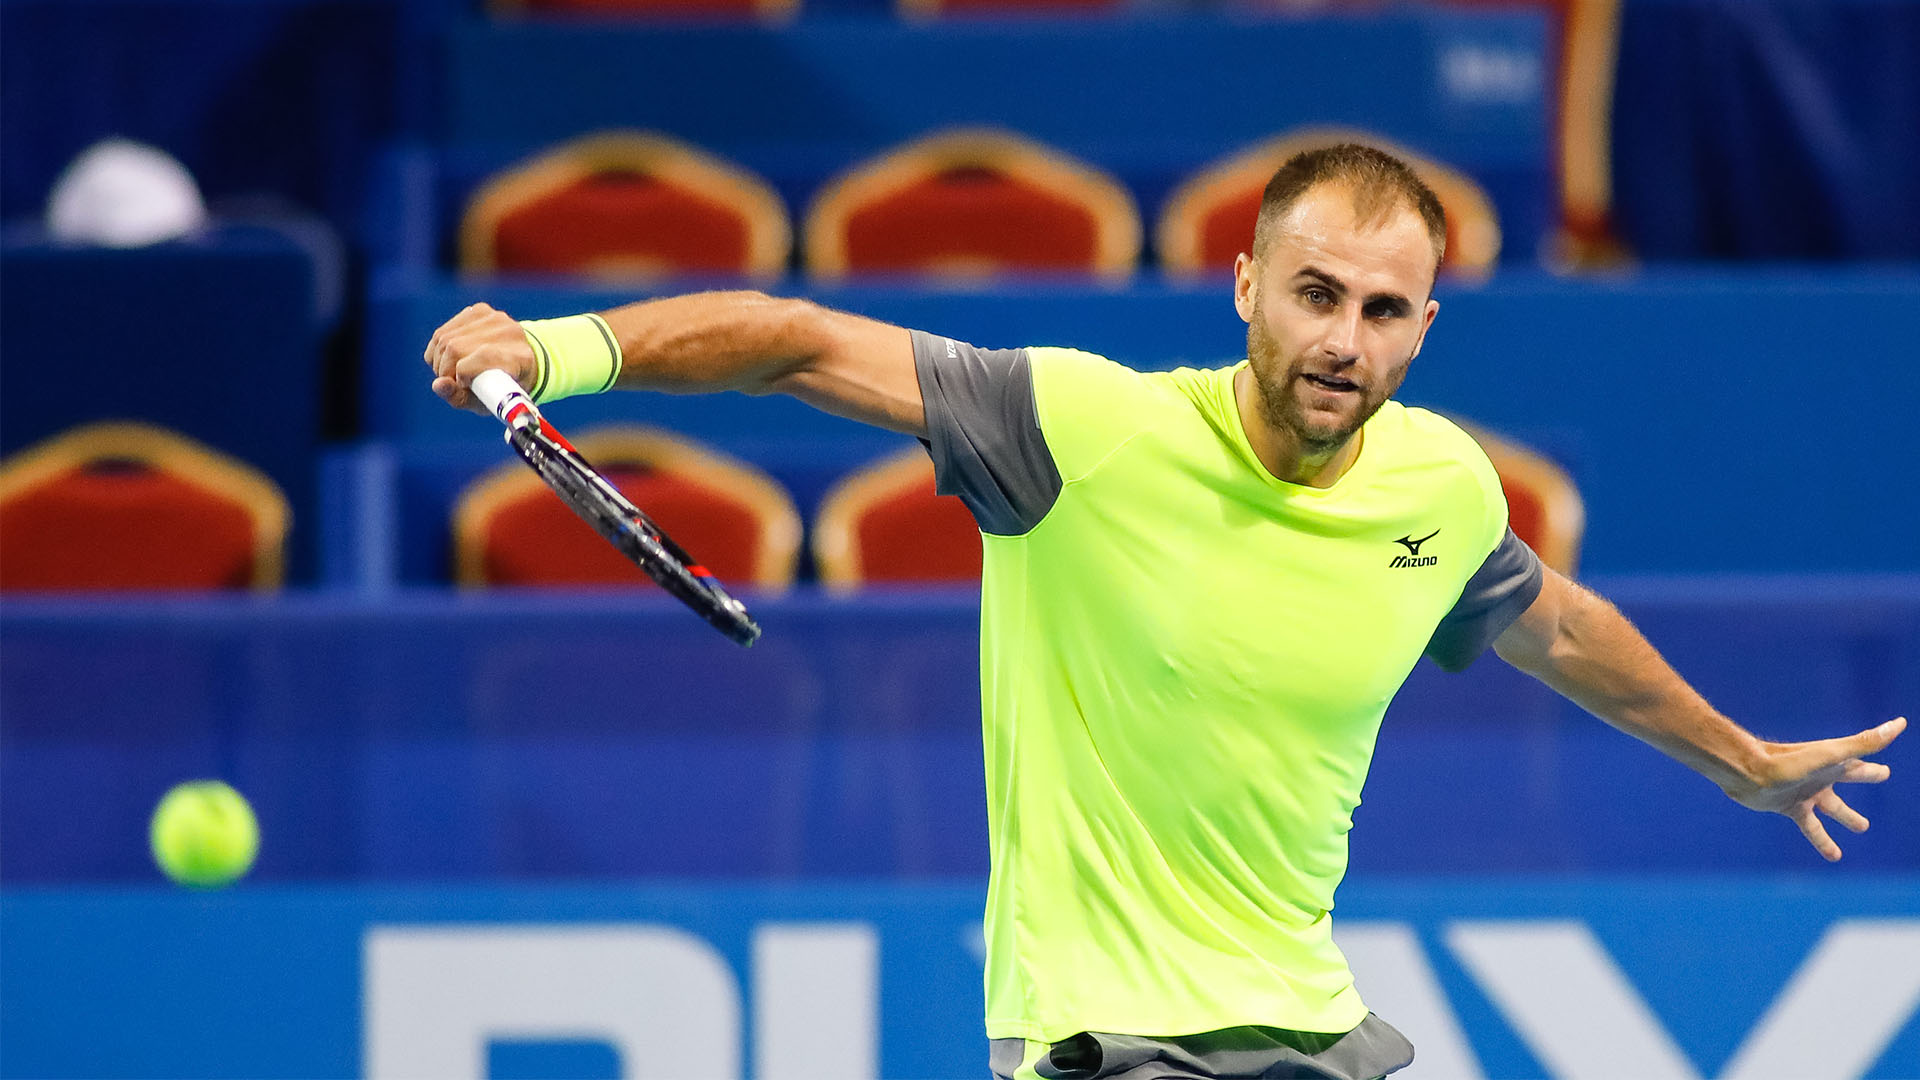 Marius Copil vs Robin Haase, Sofia Open